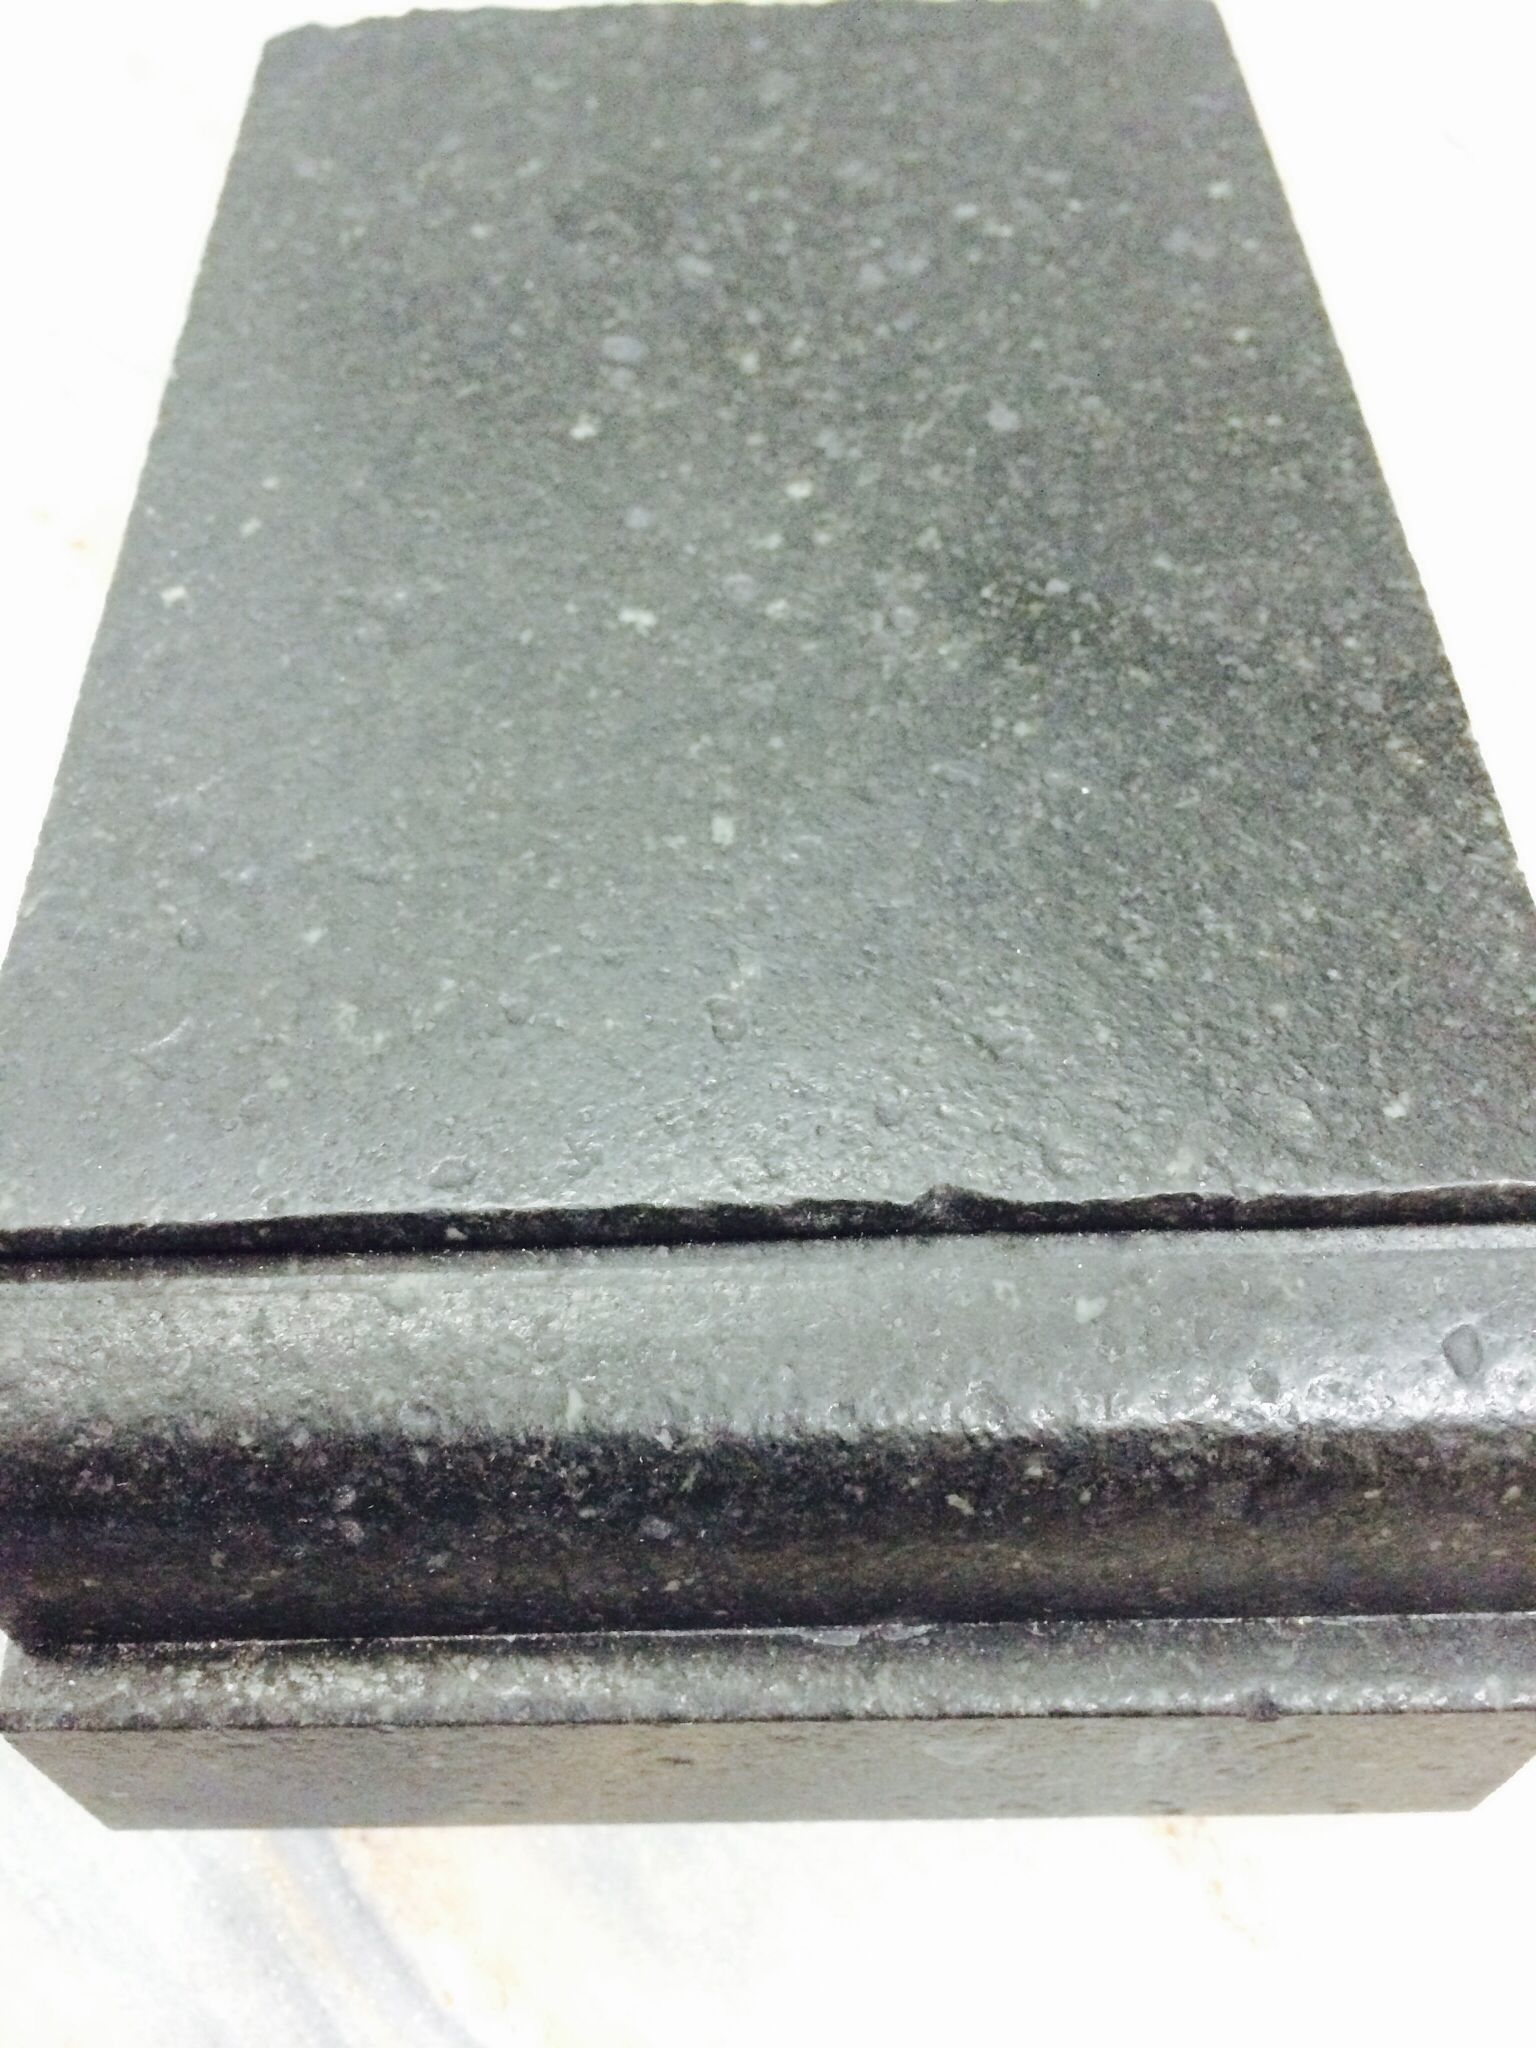 Attractive Leathered Finish Black Granite DuPont Square Edge Profile These Countertops  Will Be On Coffee Station And